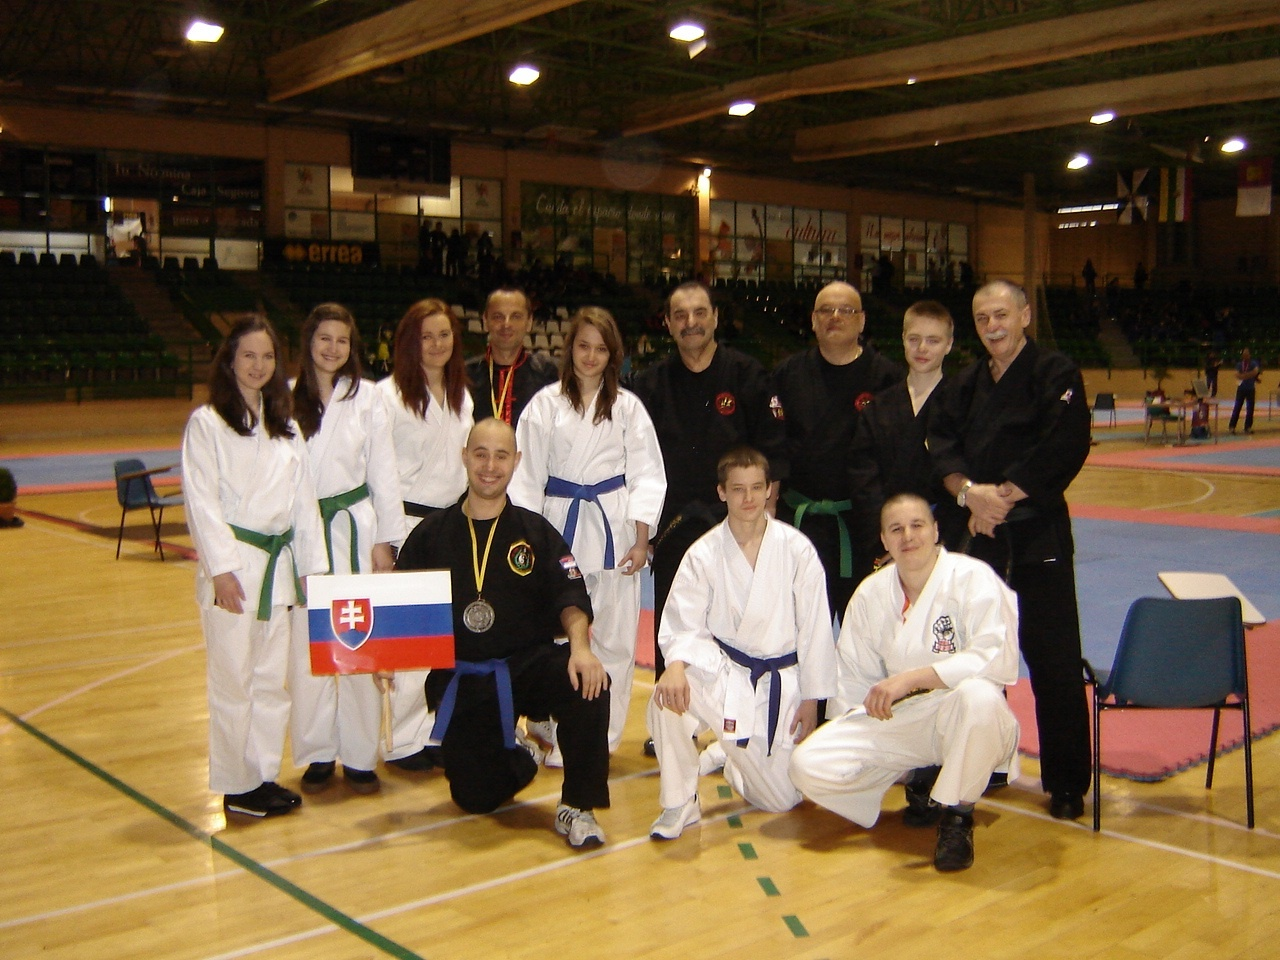 World All Styles Championships, Open Kempo World Cup 2013